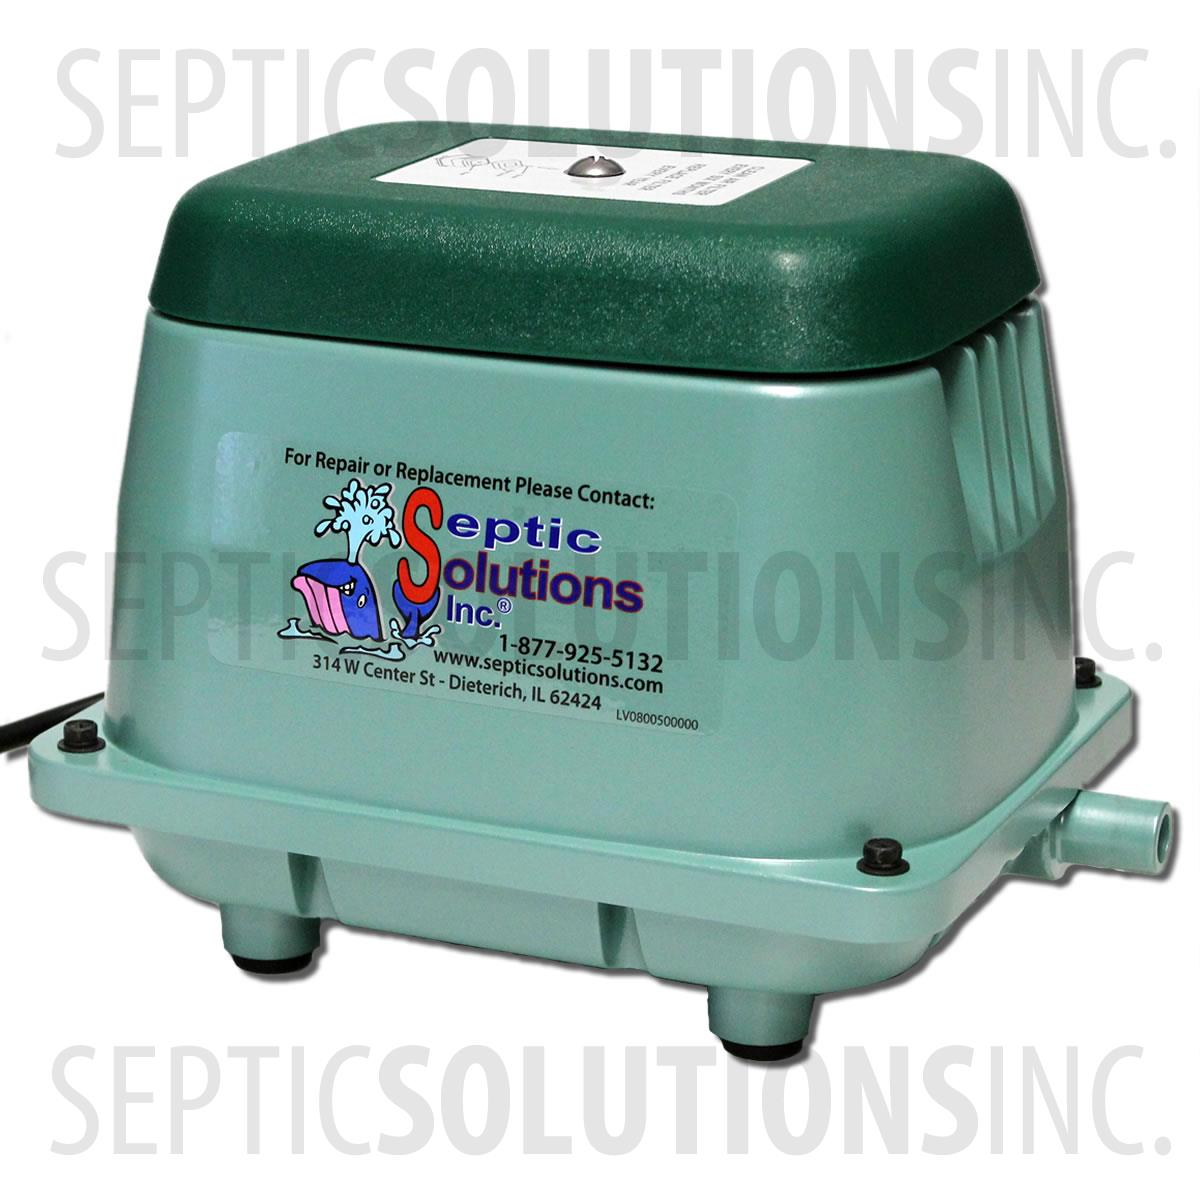 CS500_1?w=600 clearstream aerobic septic system air pumps and repair parts  at edmiracle.co